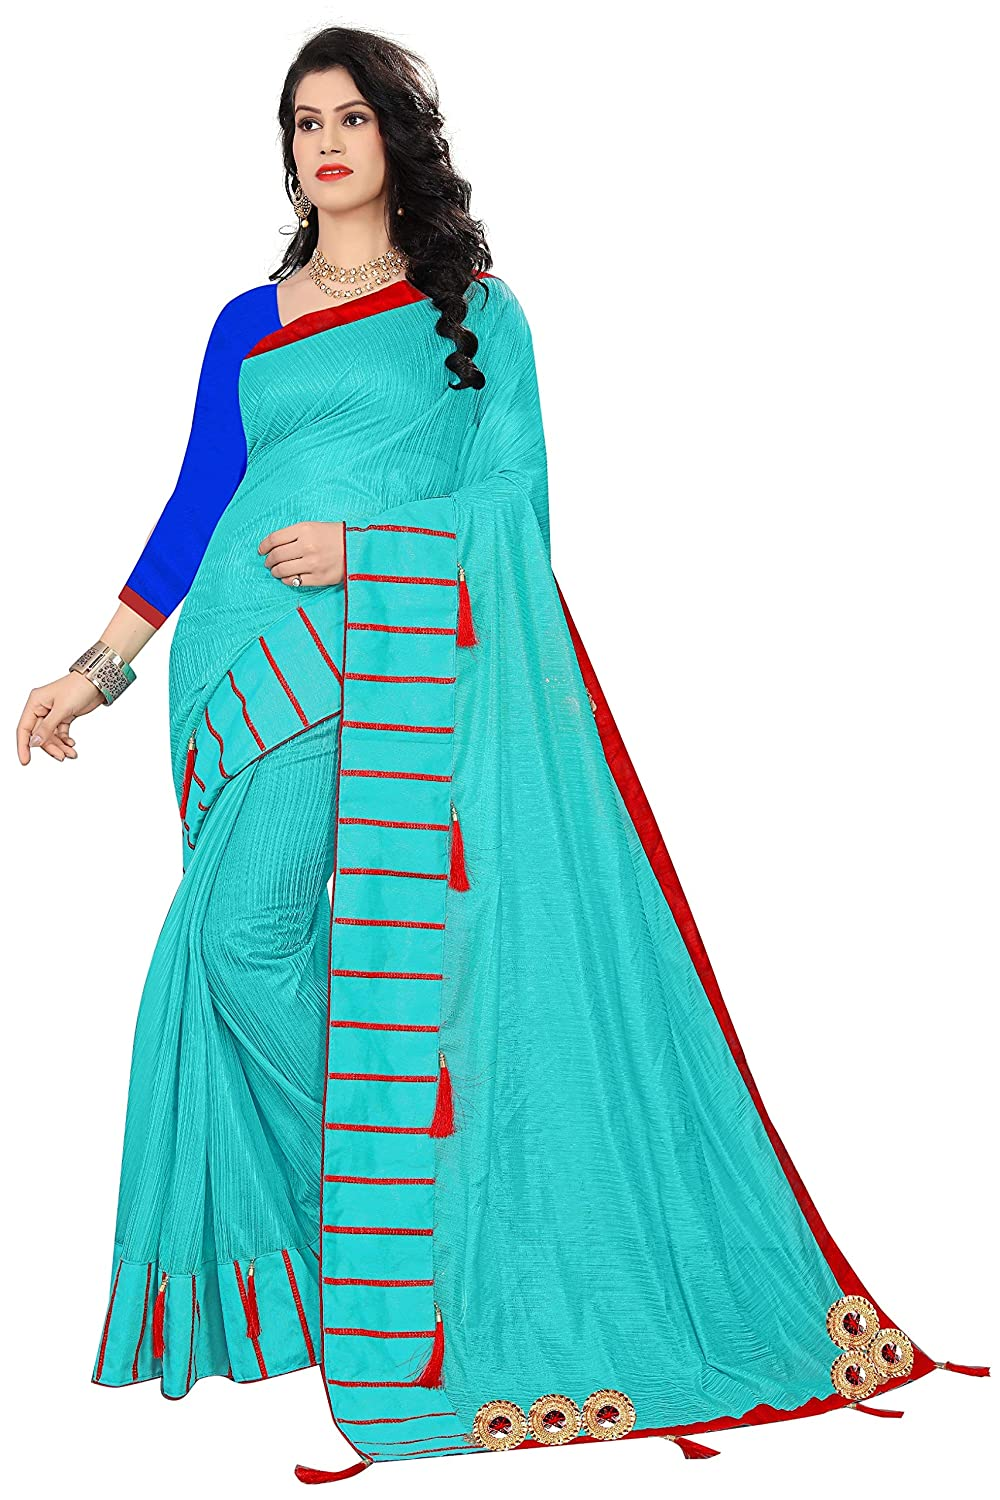 Florence Women's Turquoise Pure Soft Polyester Stone,